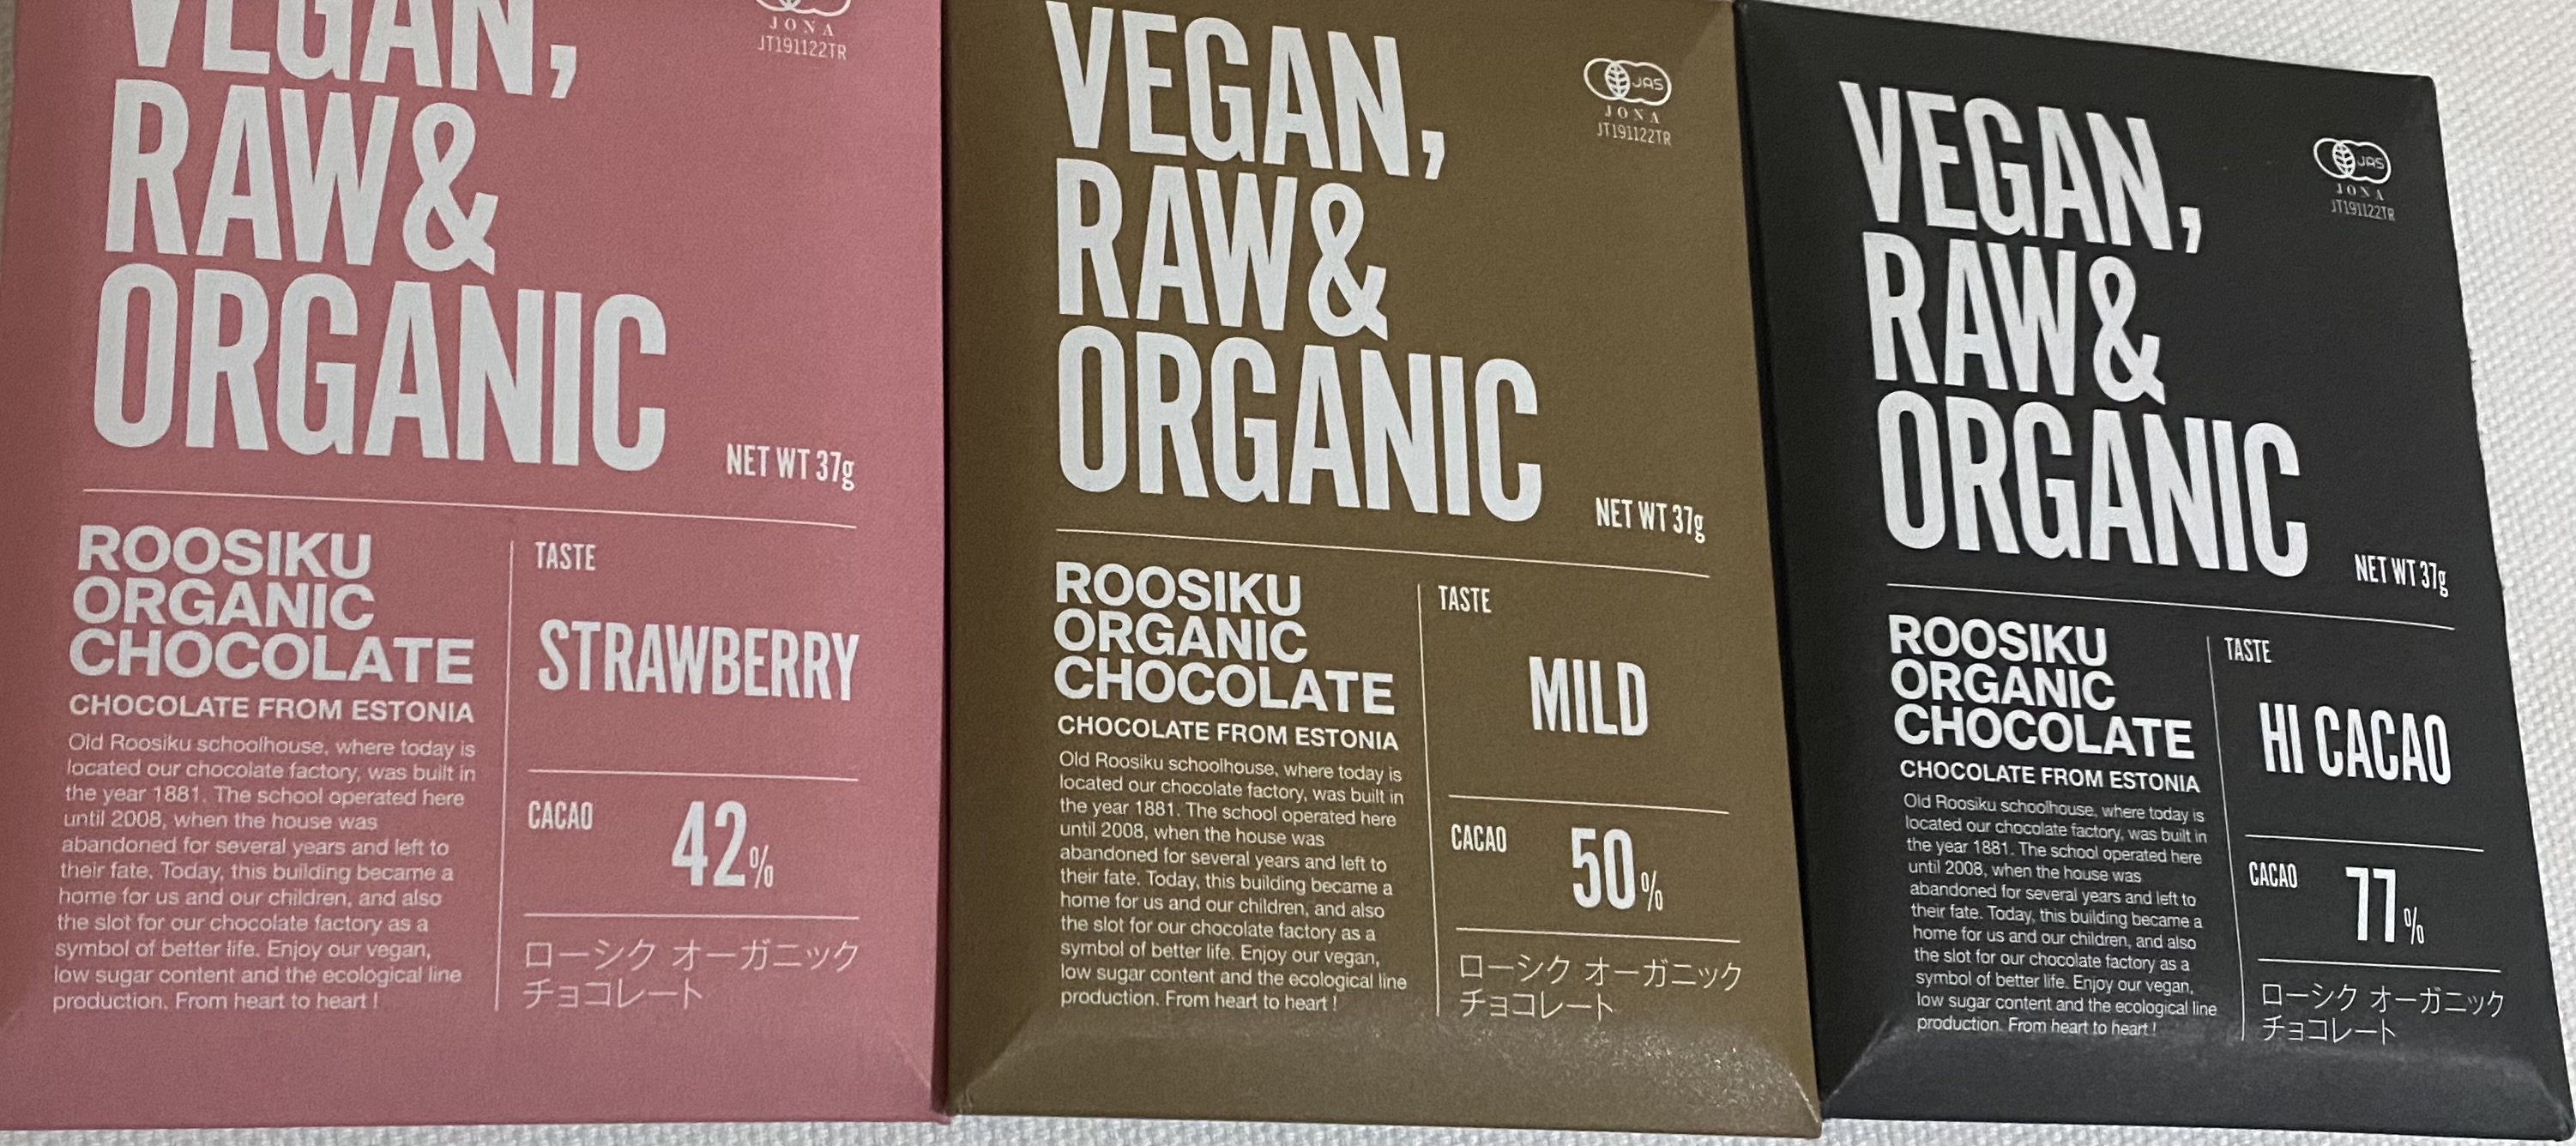 Roosiku Organic Chocolate